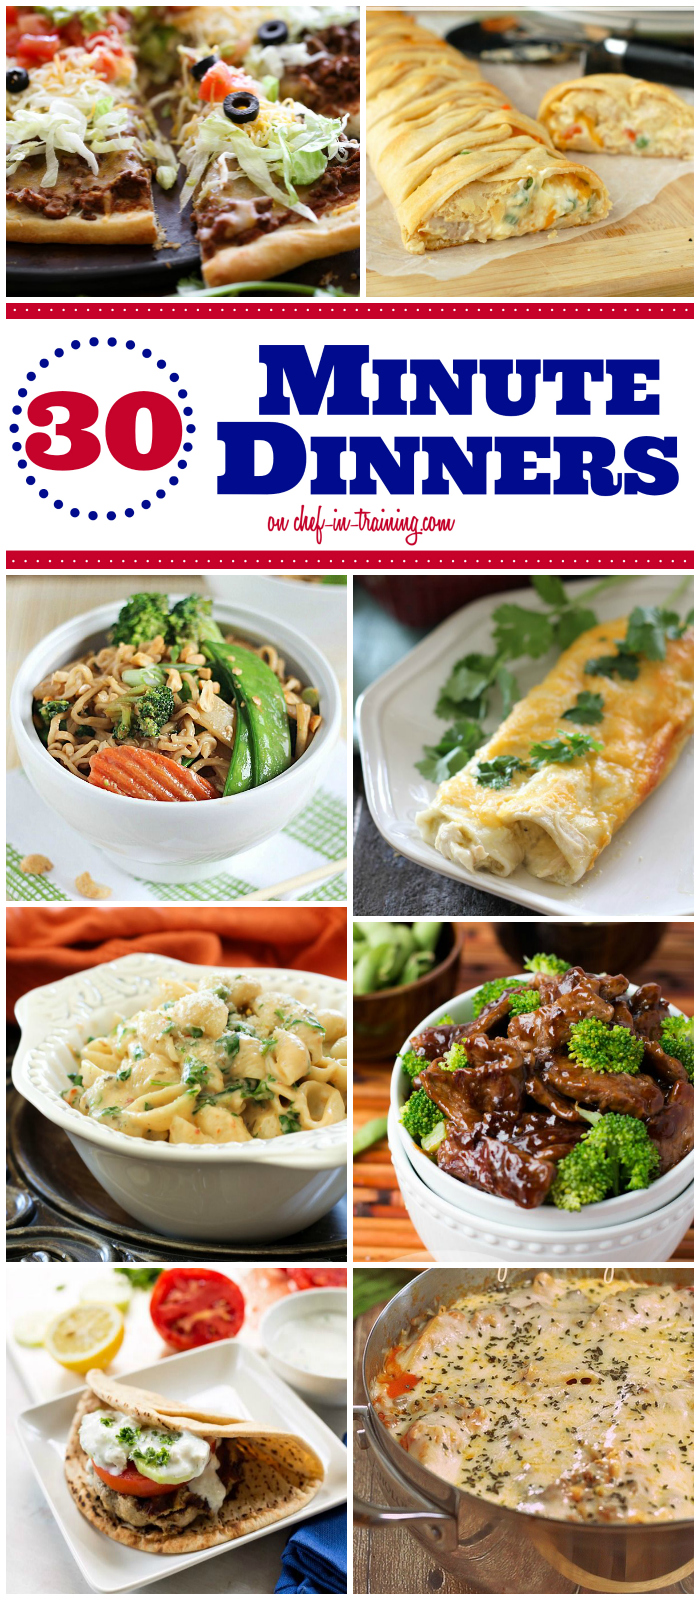 30 Minute Dinner Recipes at chef-in-training.com …If you find yourself in a dinner rut and need a quick option, then this is the list for you! So many delicious options!